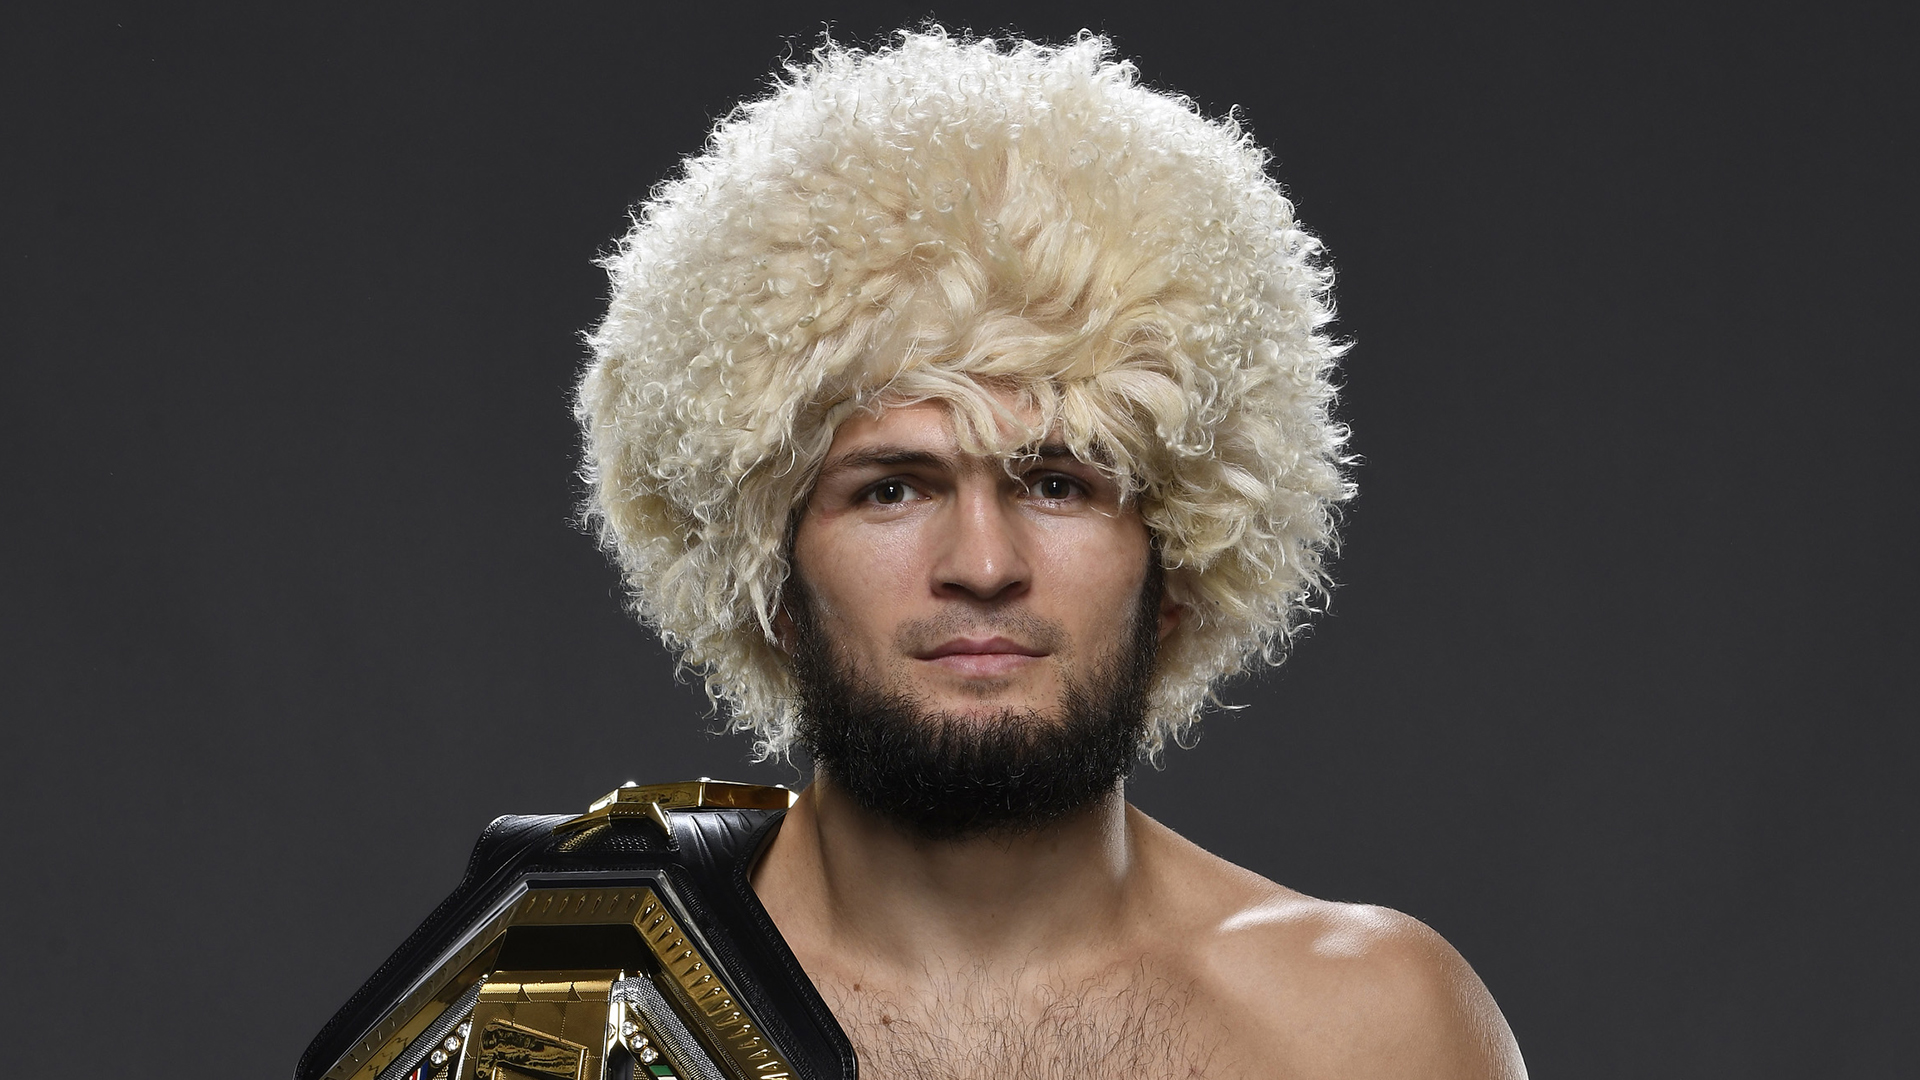 Khabib Nurmagomedov of Russia poses for a portrait backstage during the UFC 254 event on October 24, 2020 on UFC Fight Island, Abu Dhabi, United Arab Emirates. (Photo by Mike Roach/Zuffa LLC via Getty Images)